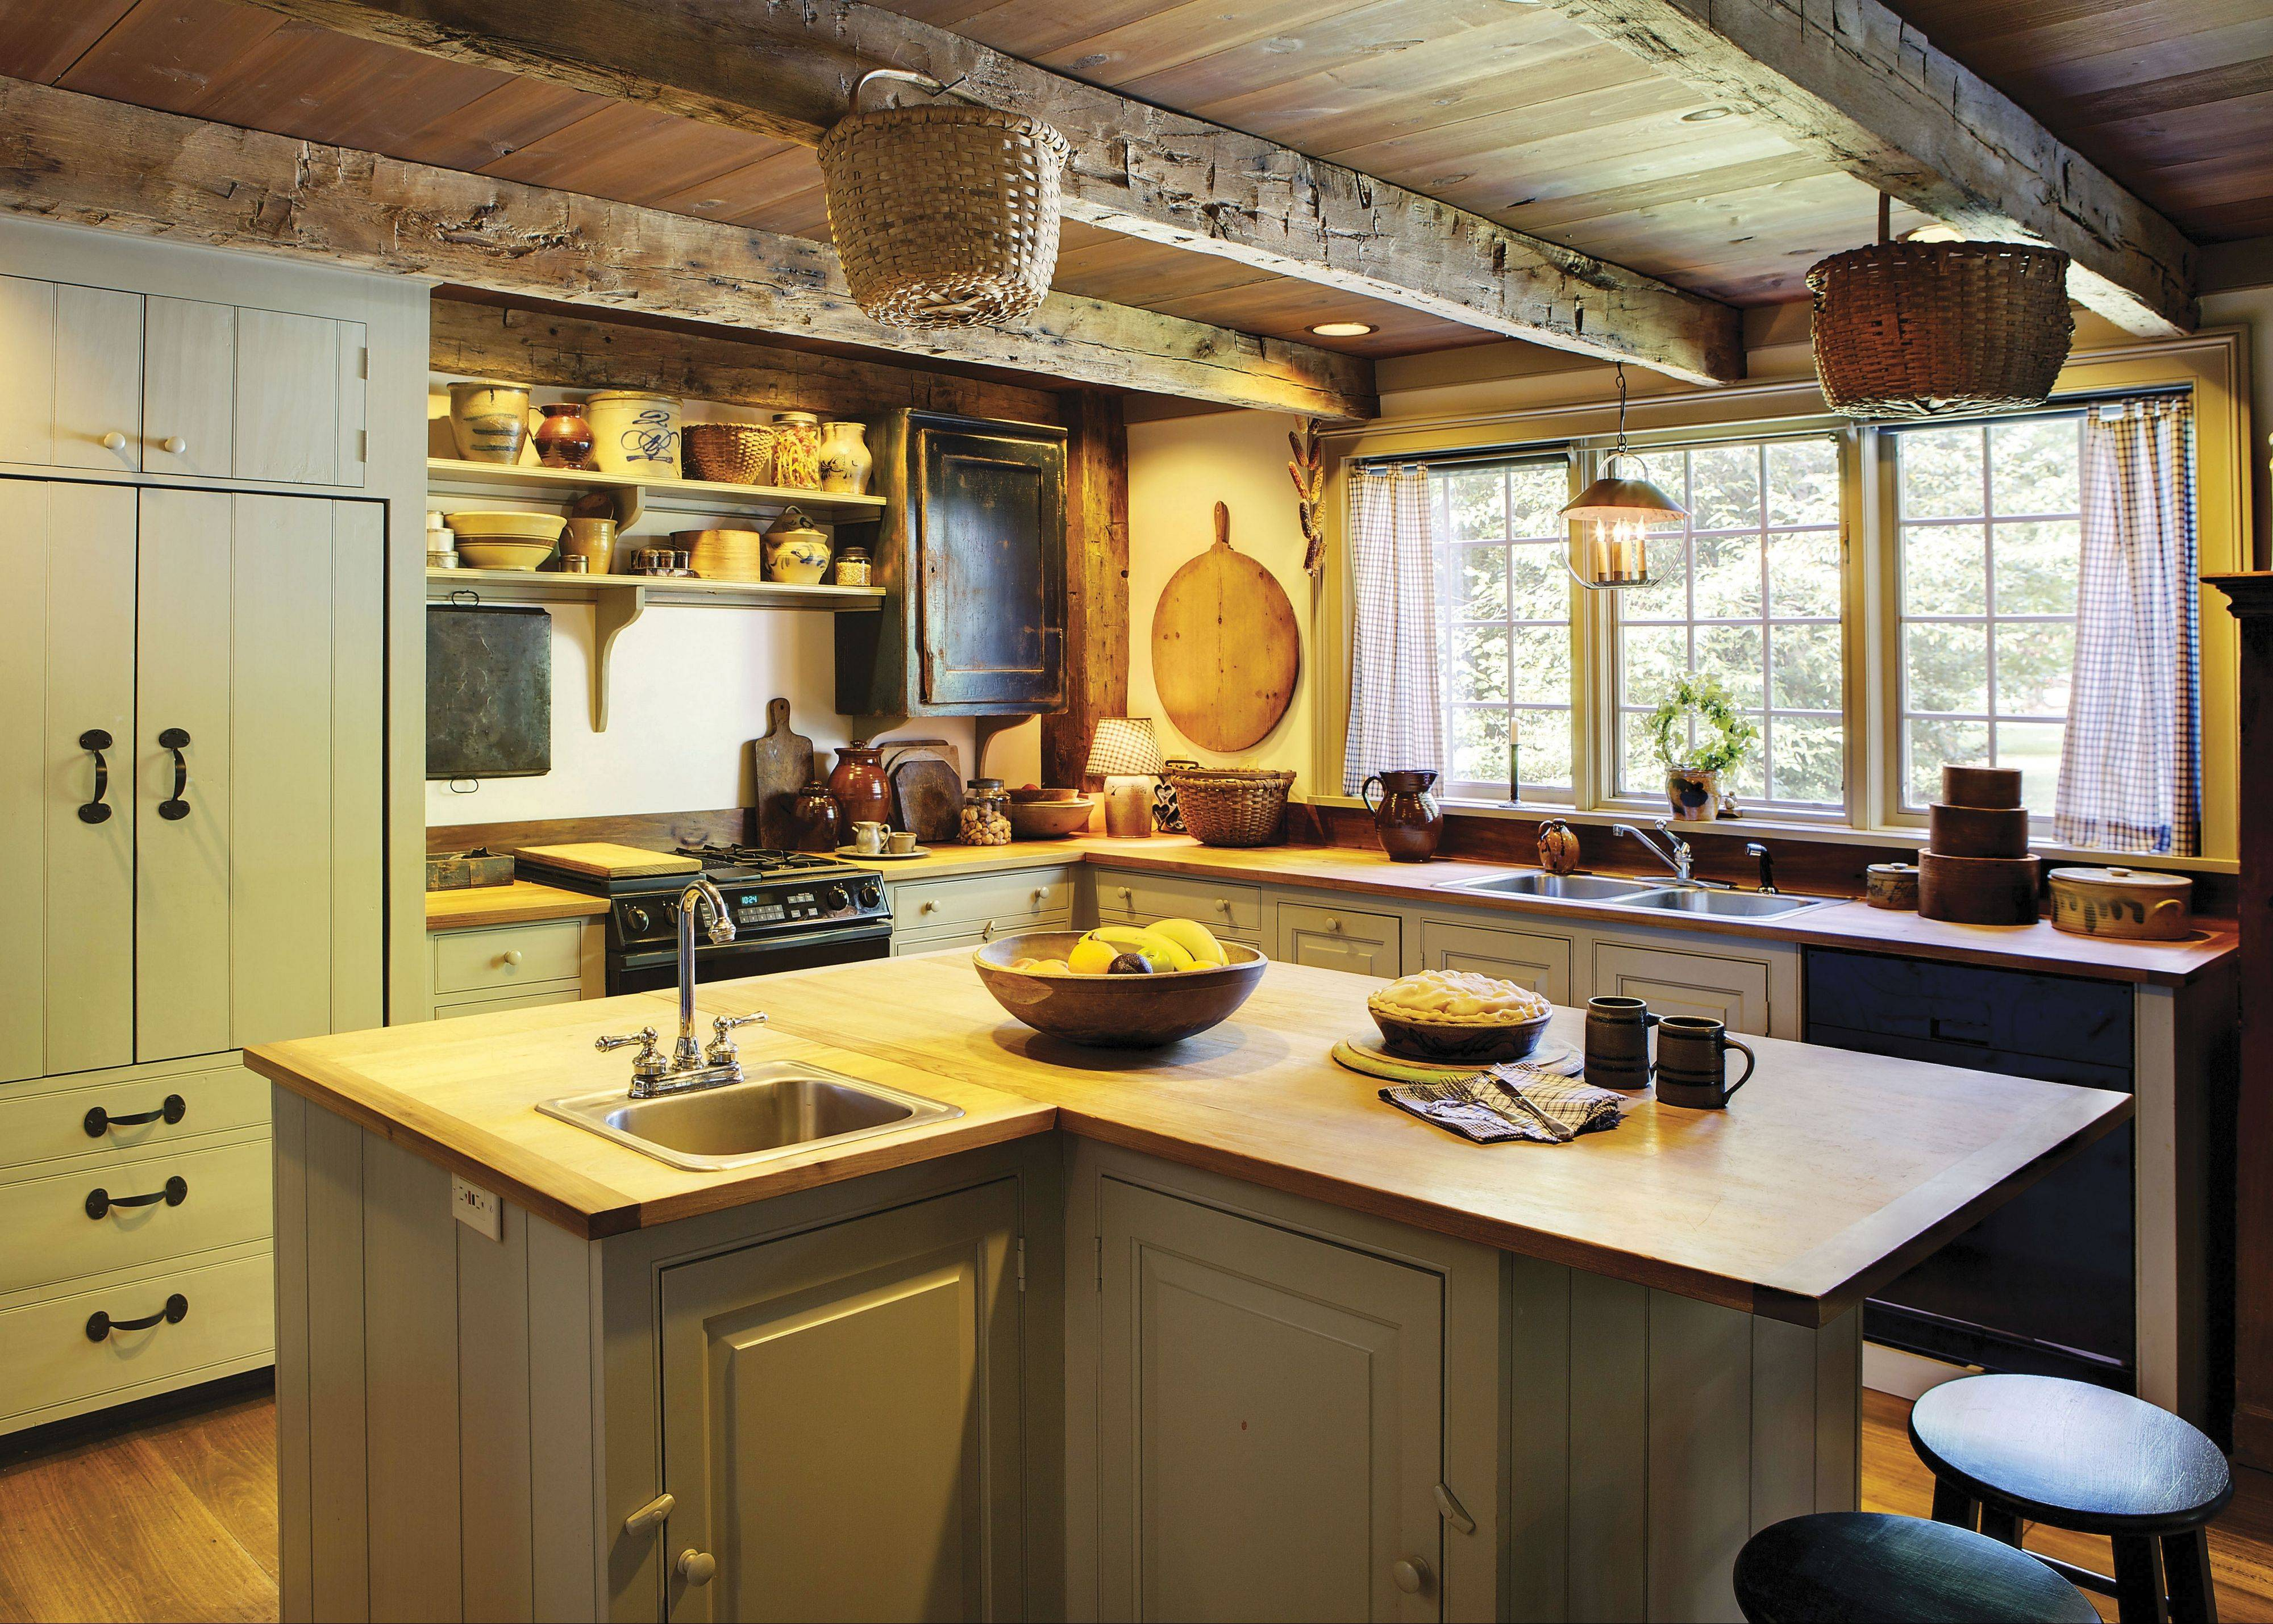 Mostly D: Rustic/FarmhouseIn a rustic kitchen, there's no question those who enter do so to cook. Big sinks, overhead pot racks and a counterop made for work are key features.